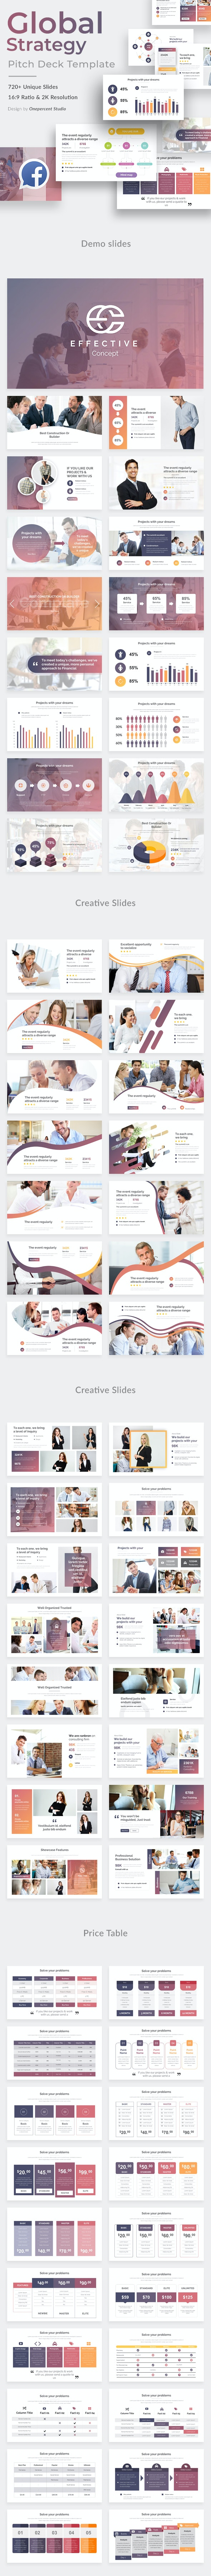 Global Strategies 3 in 1 Pitch Deck Bundle Powerpoint Template - Business PowerPoint Templates